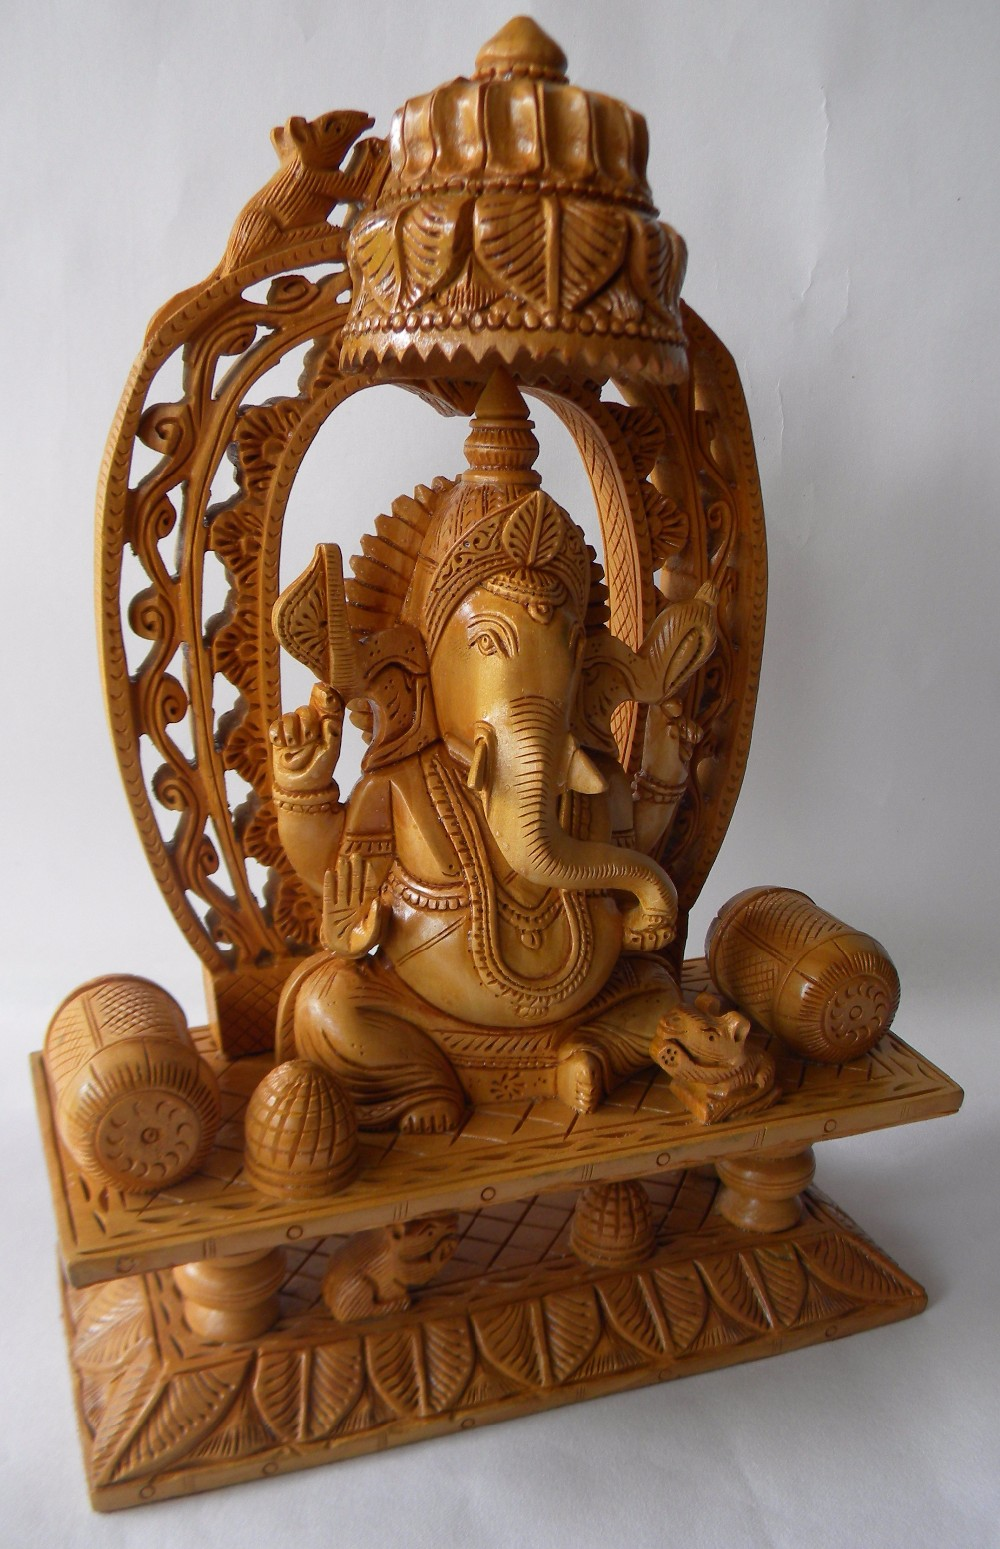 Super fine hand carved indian wooden ganesha statue sculpture of